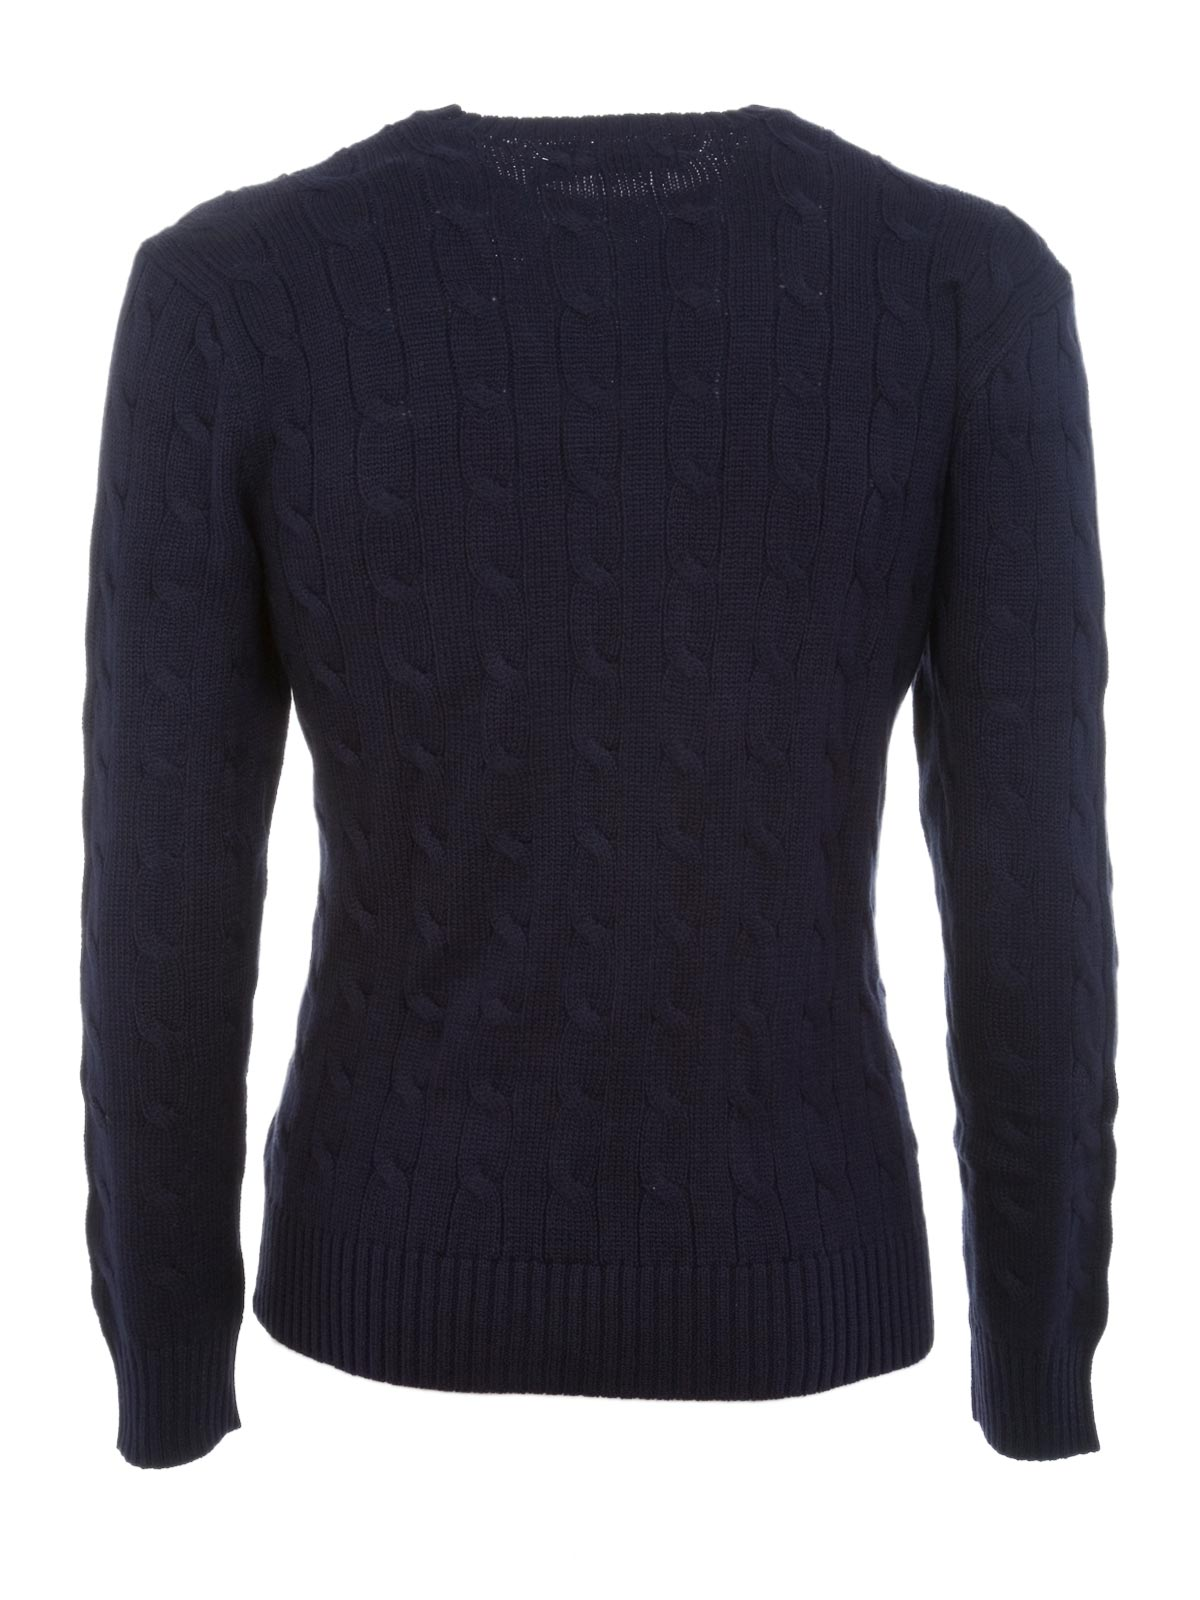 POLO RALPH LAUREN Cable-Knit Cotone Sweater Hunter Navy | Polo ...